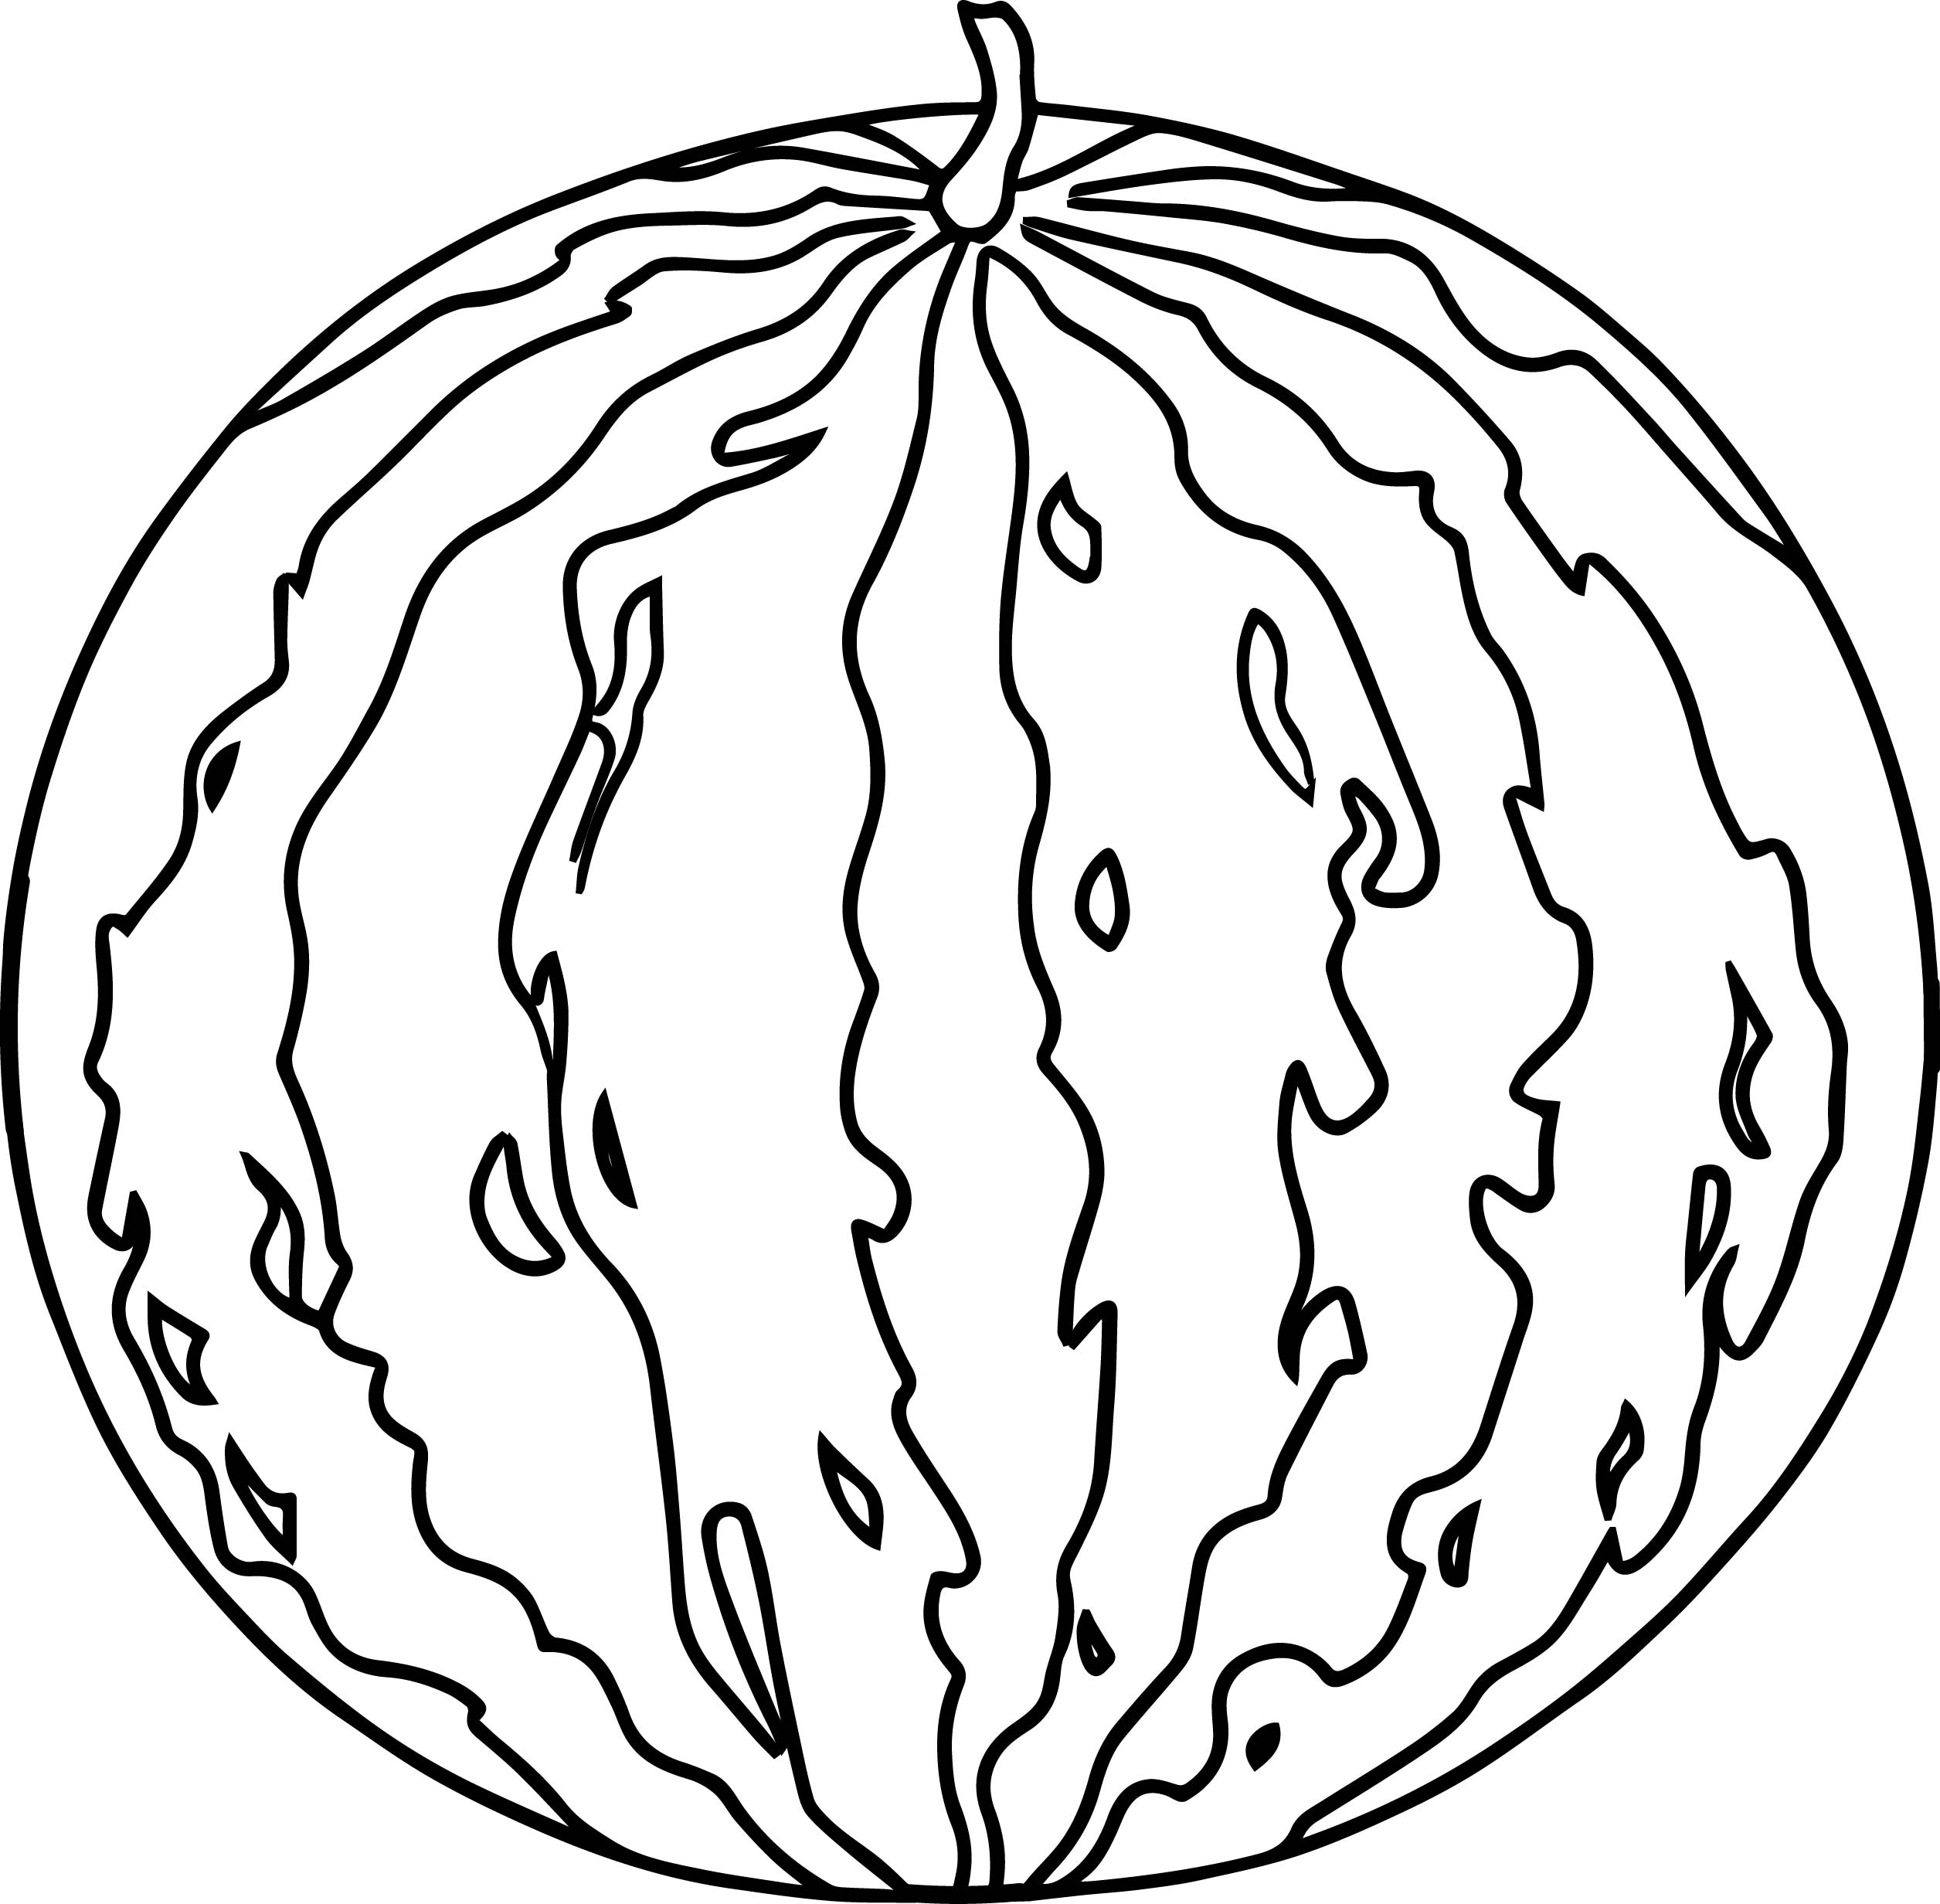 Watermelon Image Summer Coloring Page